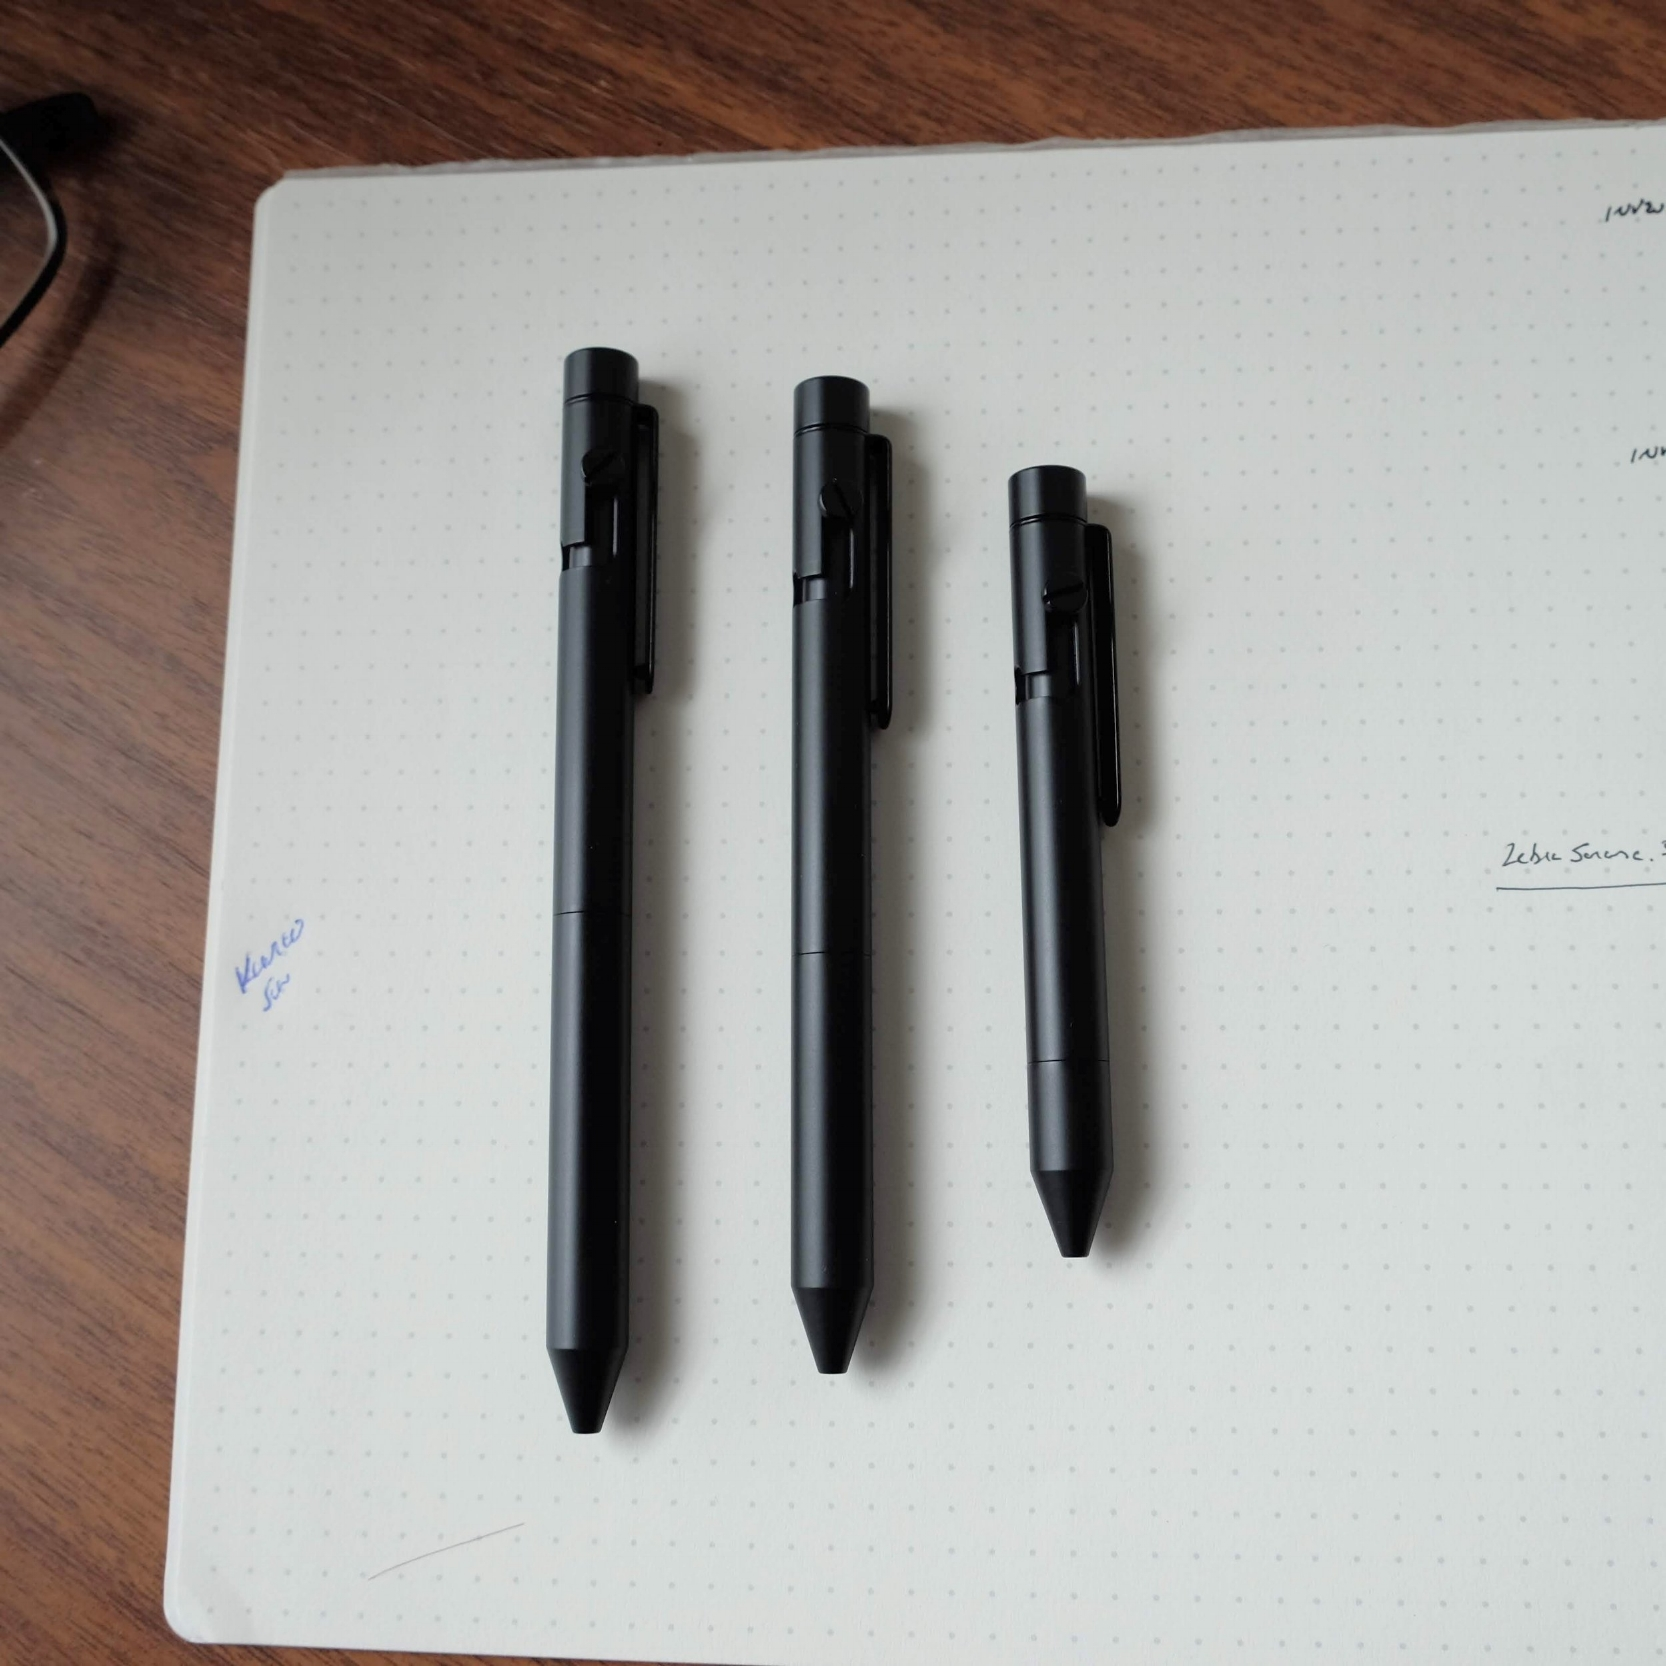 Inventery-Bolt-Action-Pen-Three-Sizes